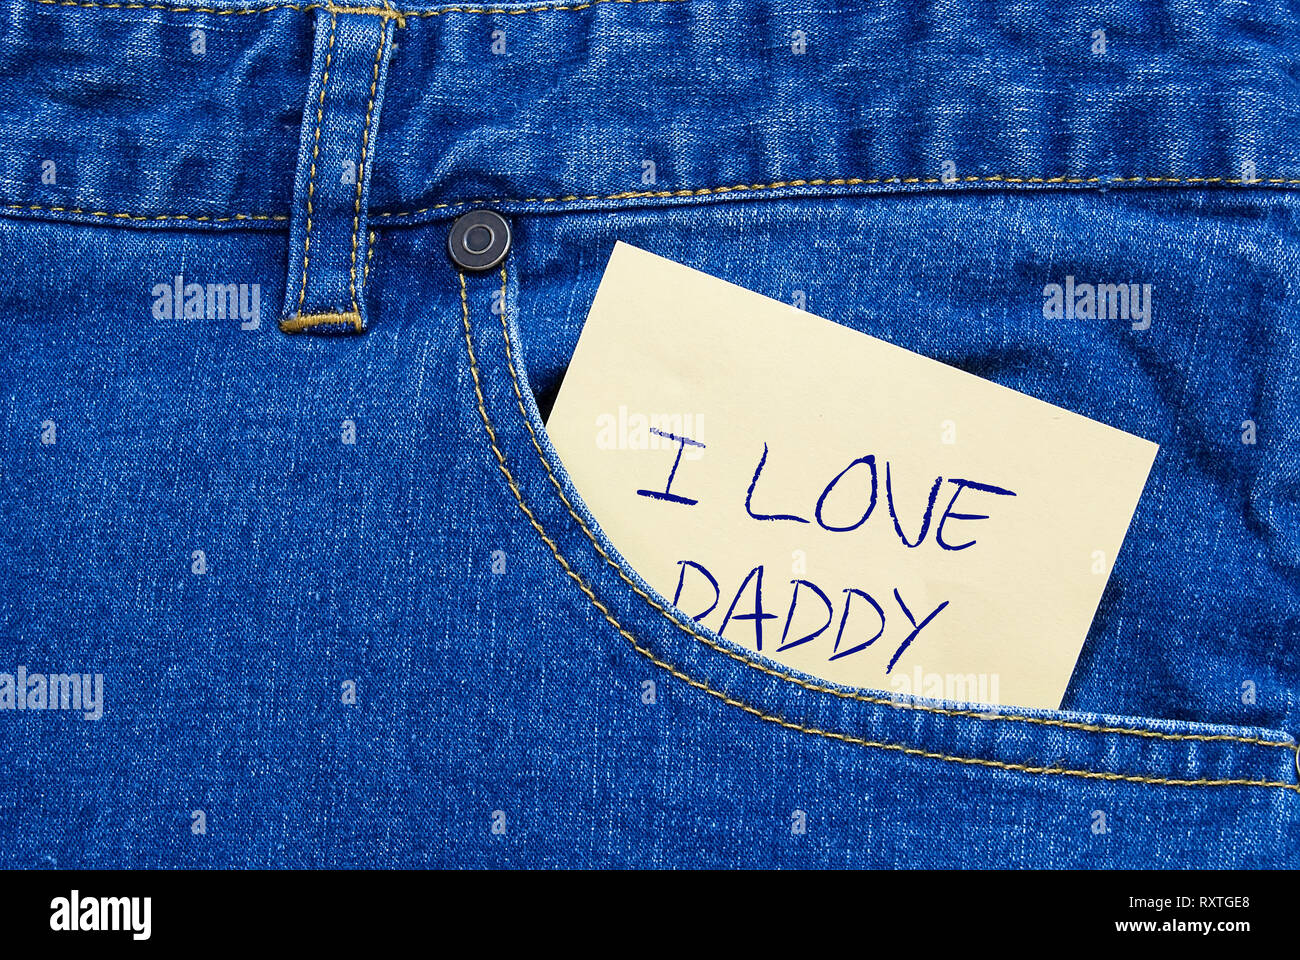 I love daddy written on a yellow posit a jeans pocket - Stock Image